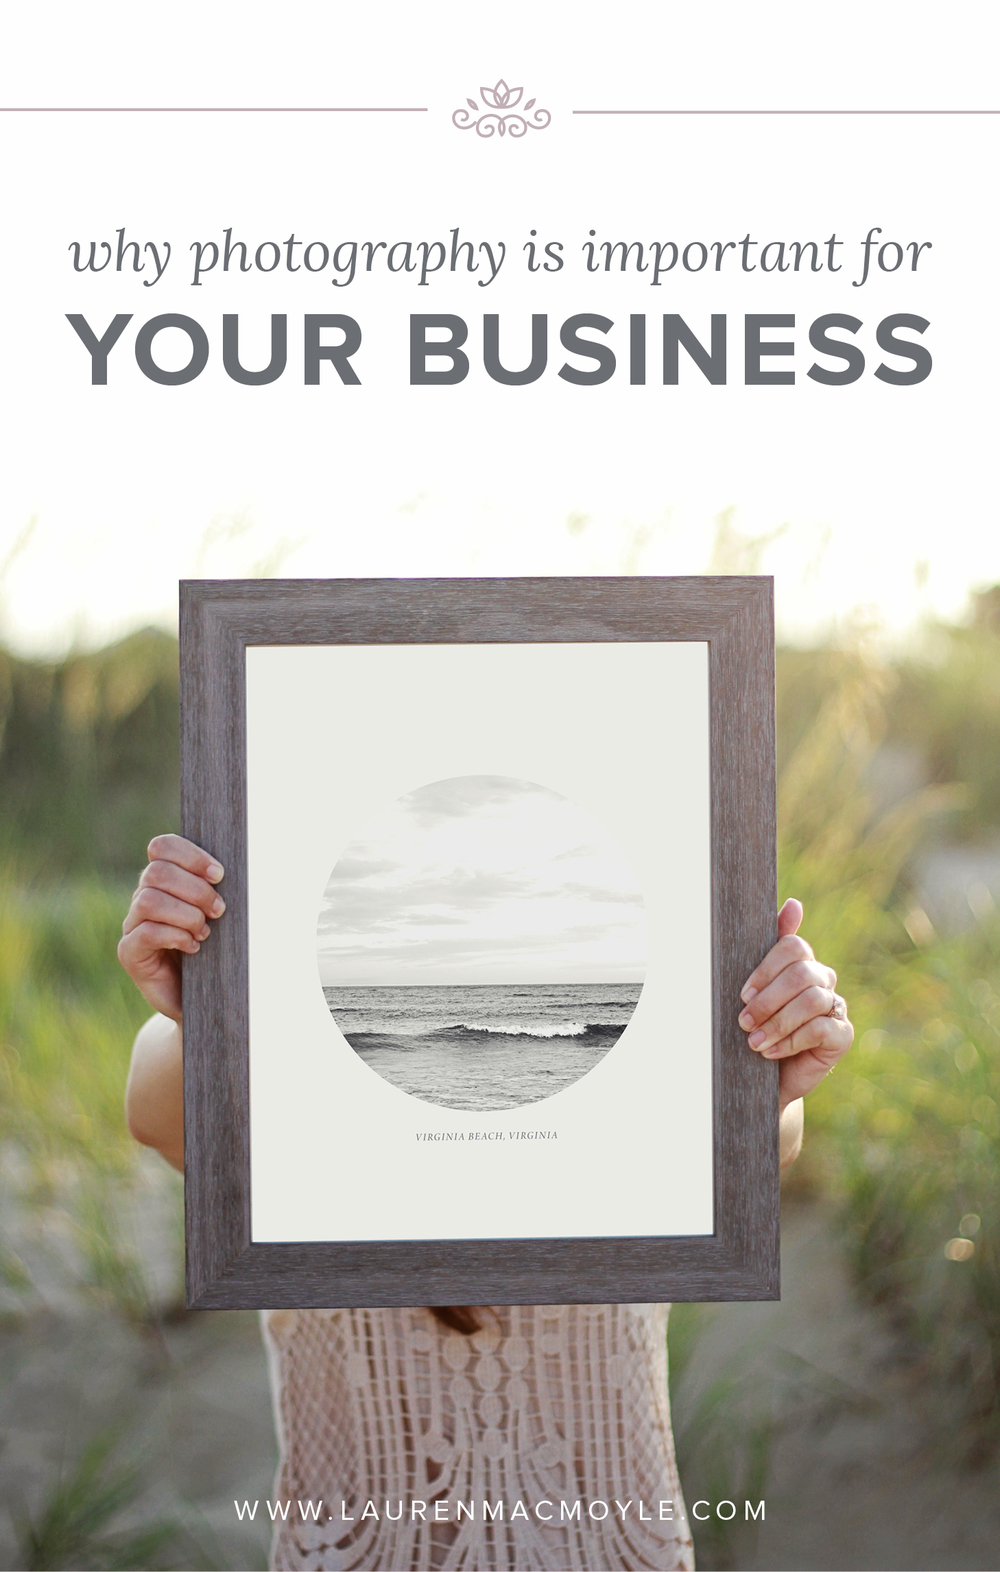 Why Photography is Important for Your Business | Lauren MacMoyle | Photography